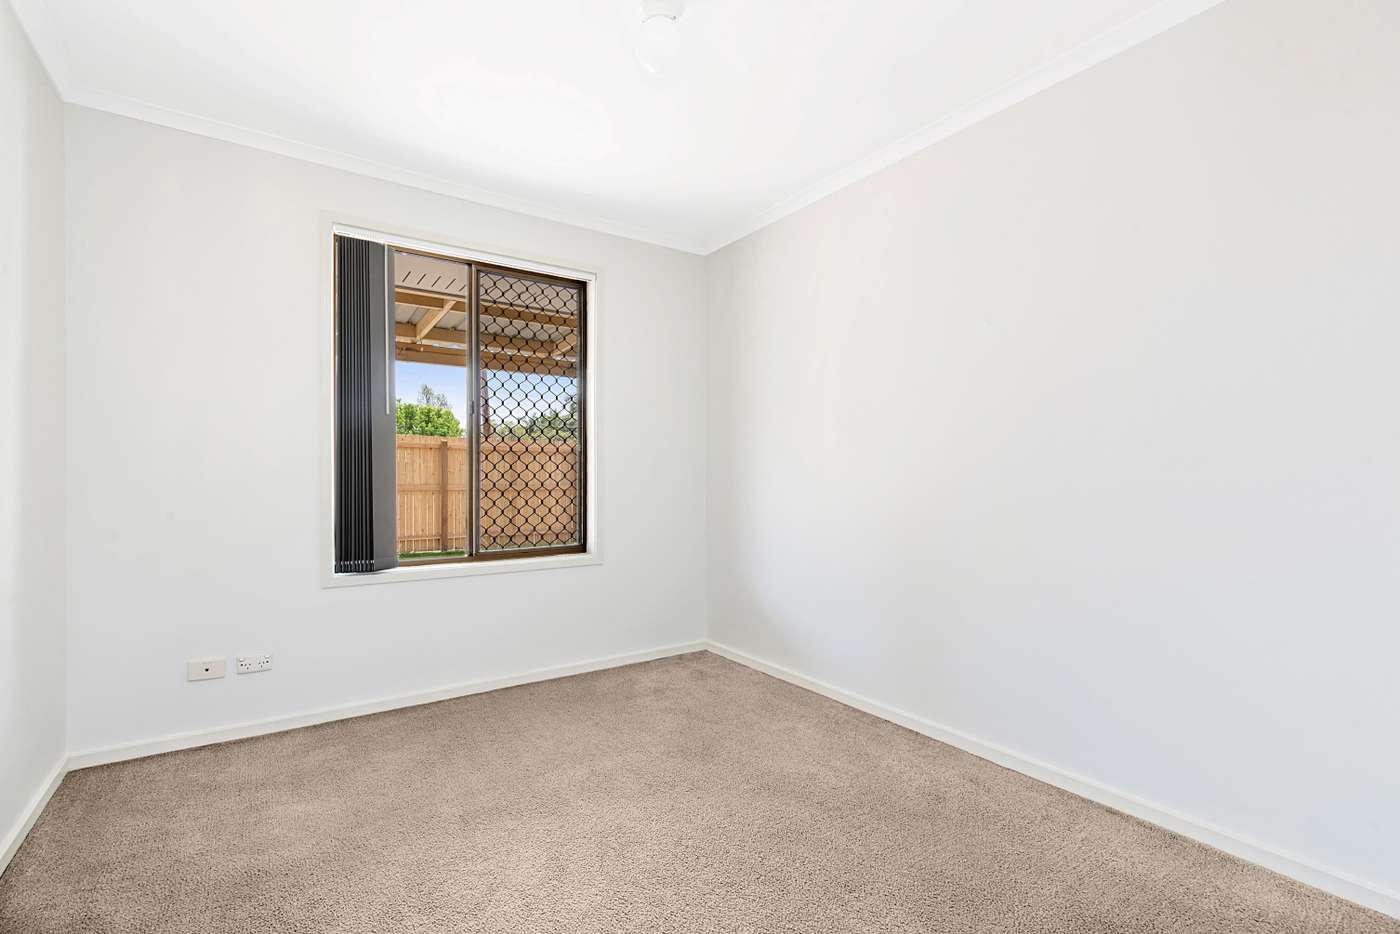 Seventh view of Homely house listing, 55 Bluegum Drive, Marsden QLD 4132